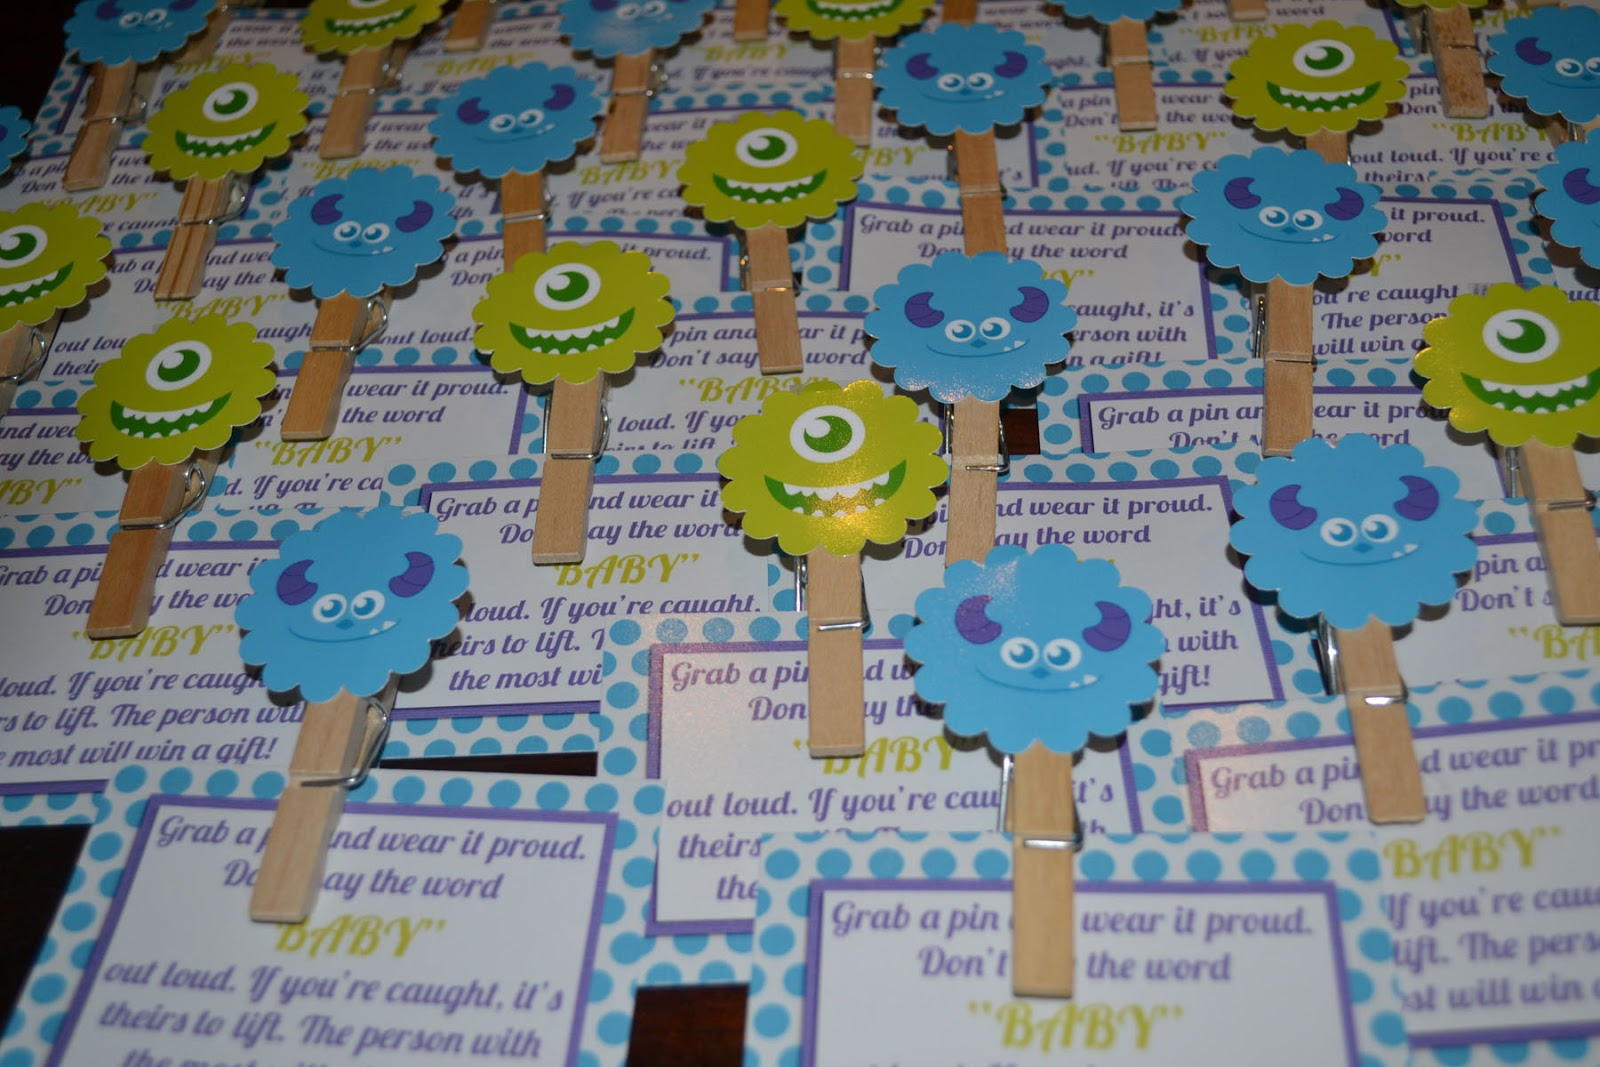 Monster Inc Baby Shower Decorations Monsters Inc Baby Shower Round Up Amanda Creation